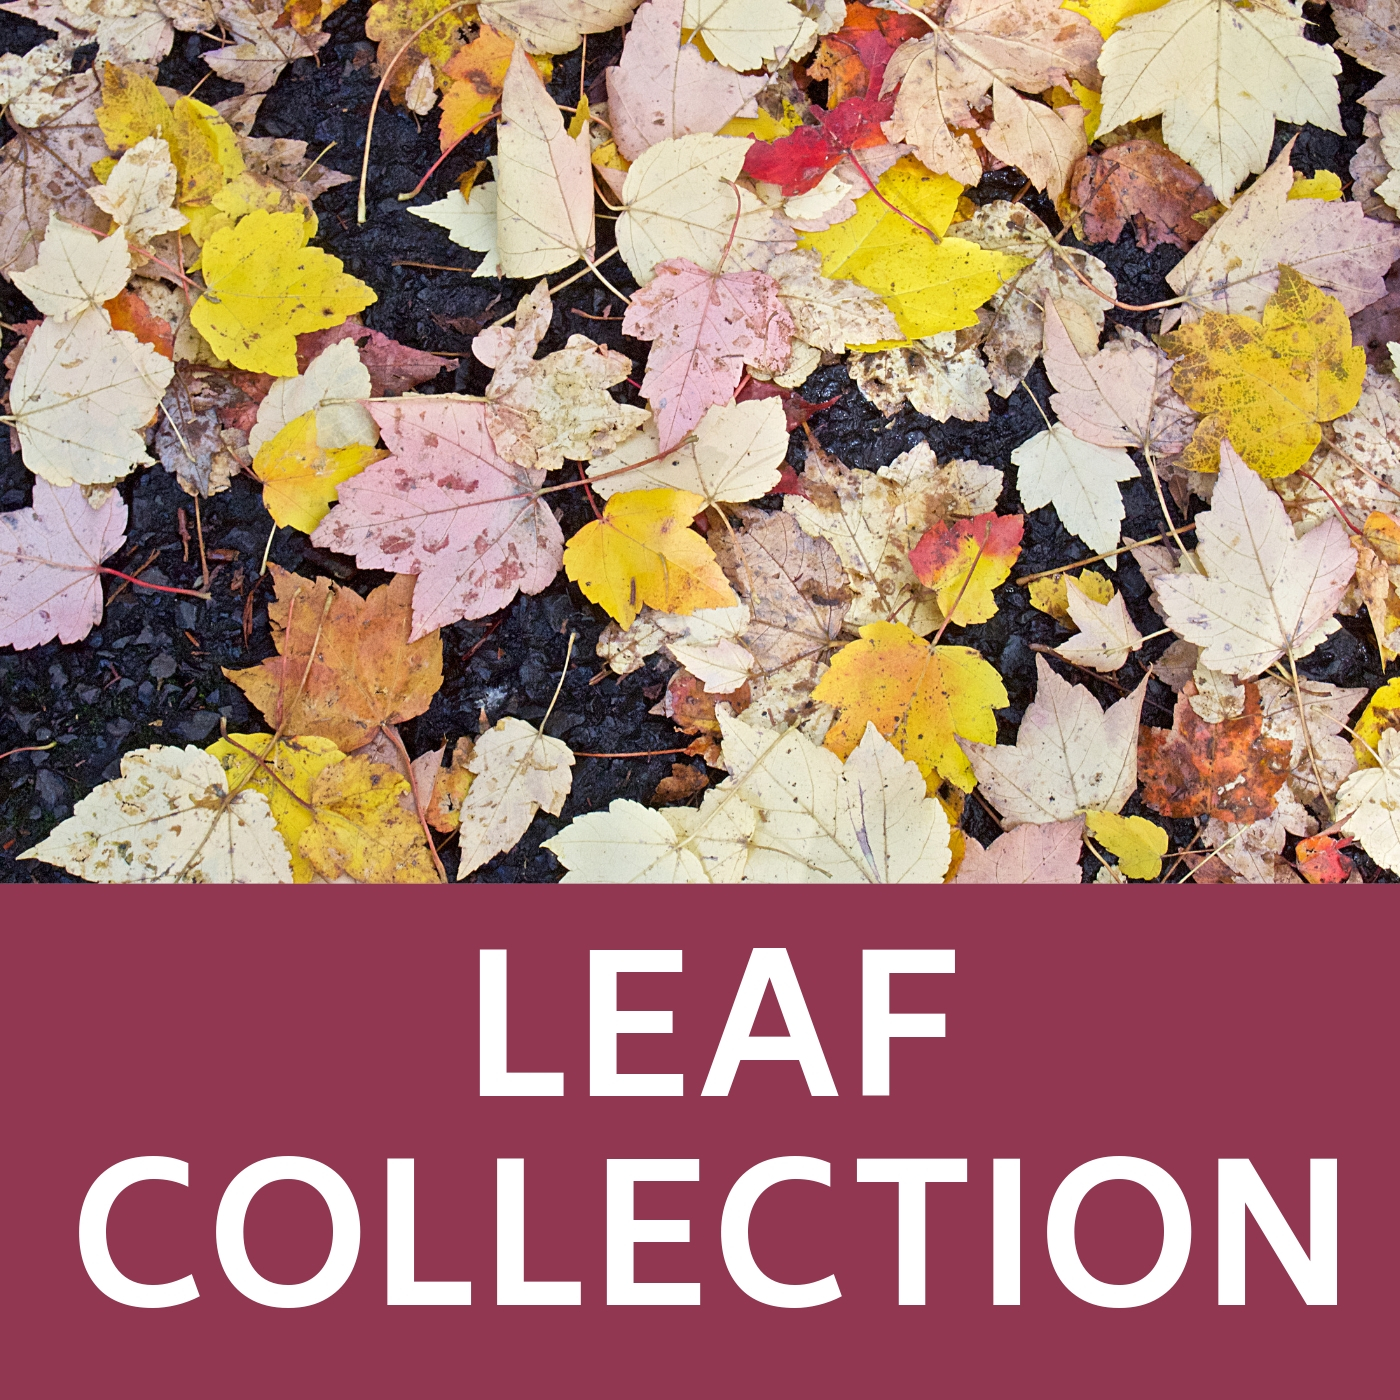 Leaf Collection Icon that links to the webpage with information about leaf collection